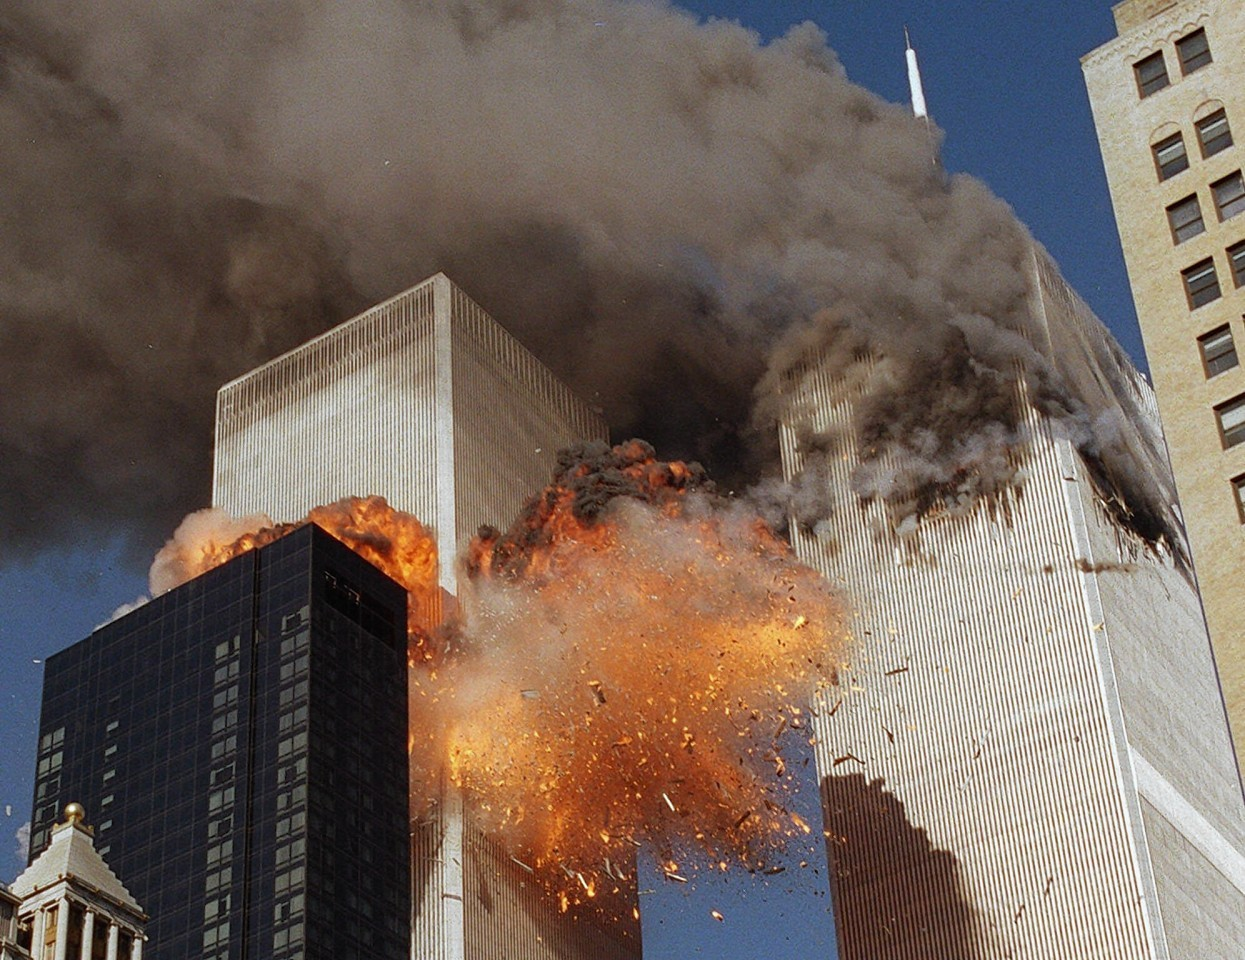 Catastrophic events like 9/11 highlight the unpredictability of stock markets